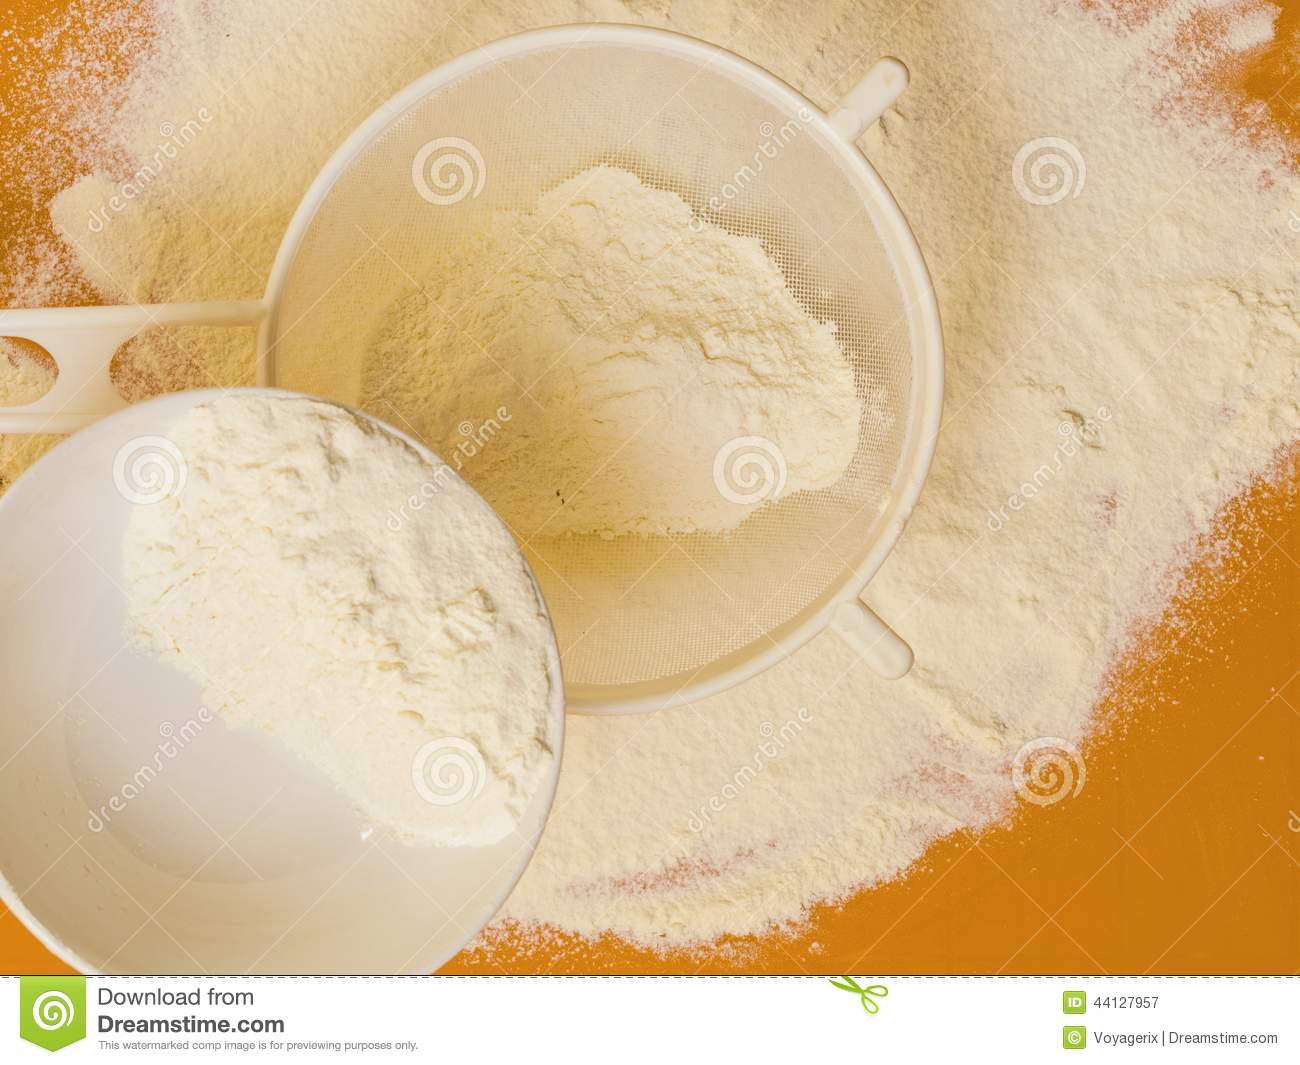 how to make wheat flour bdo